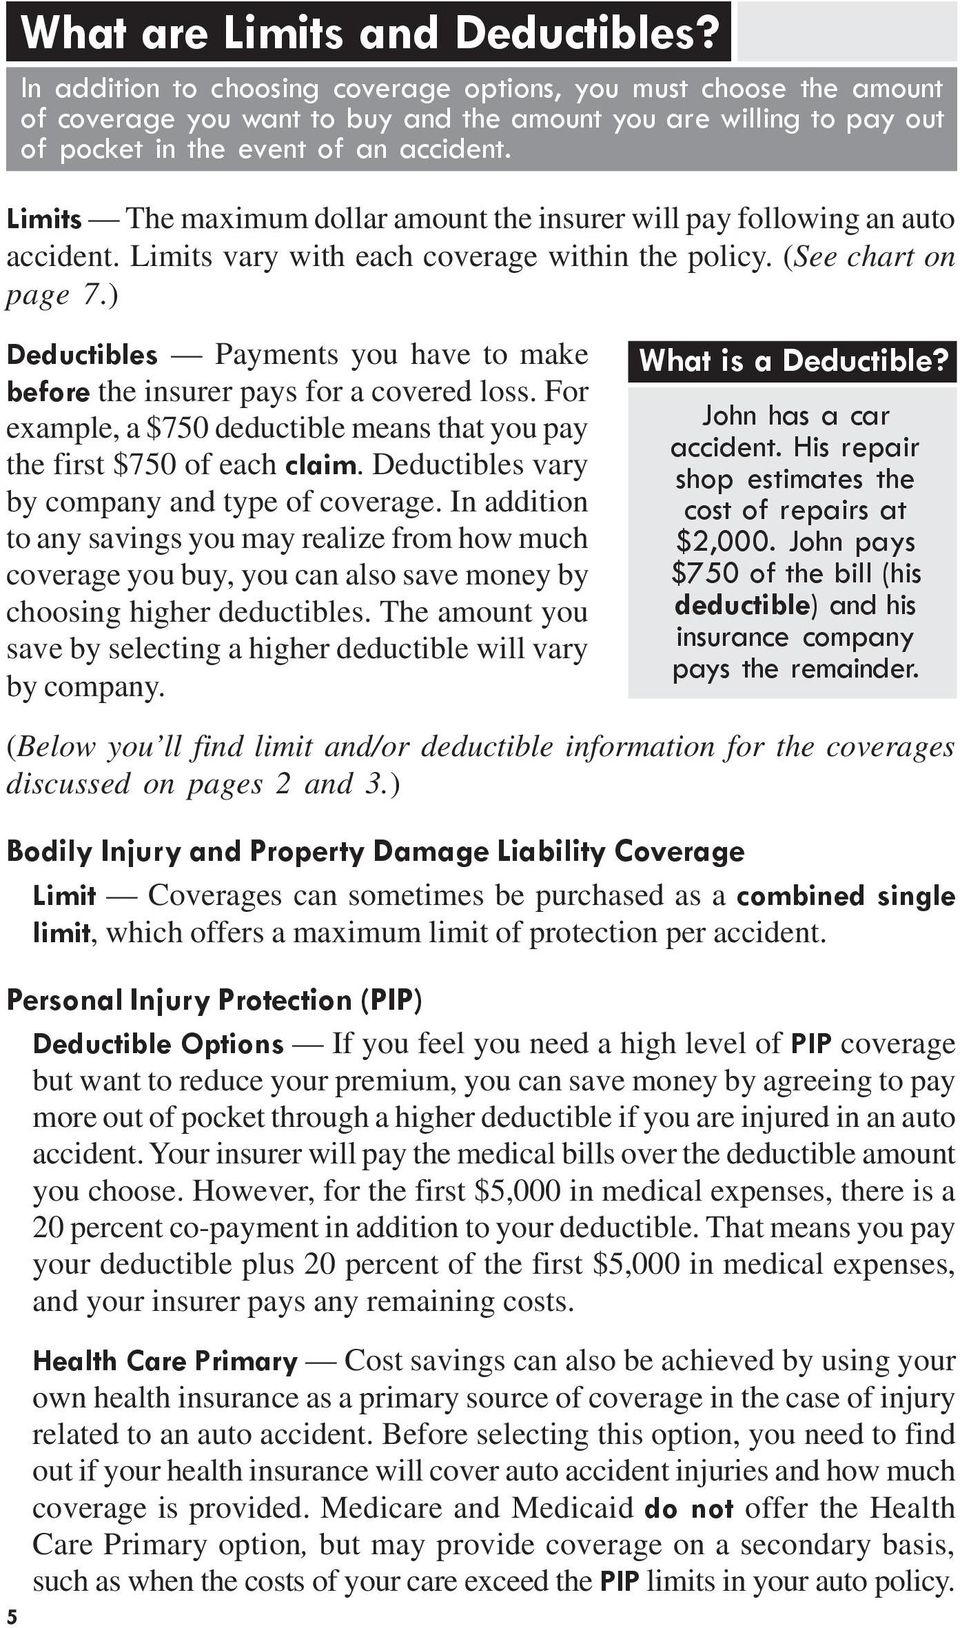 Limits The maximum dollar amount the insurer will pay following an auto accident. Limits vary with each coverage within the policy. (See chart on page 7.